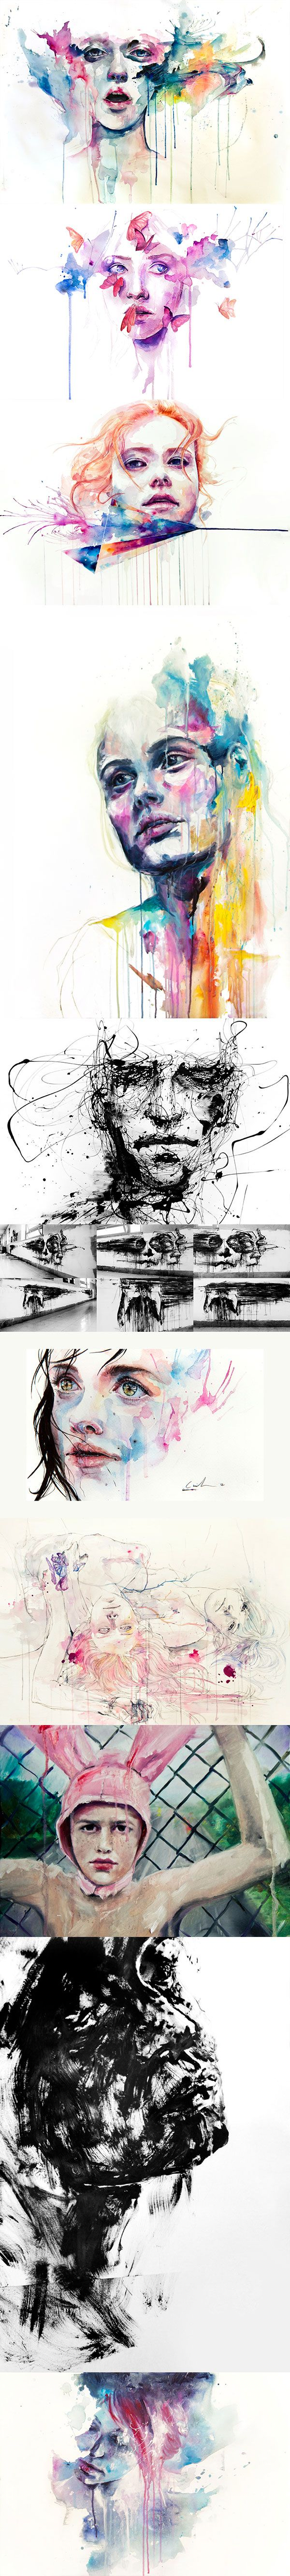 These are most of her amazing art work... Hope mine will be as good as hers some day. agnes cecile